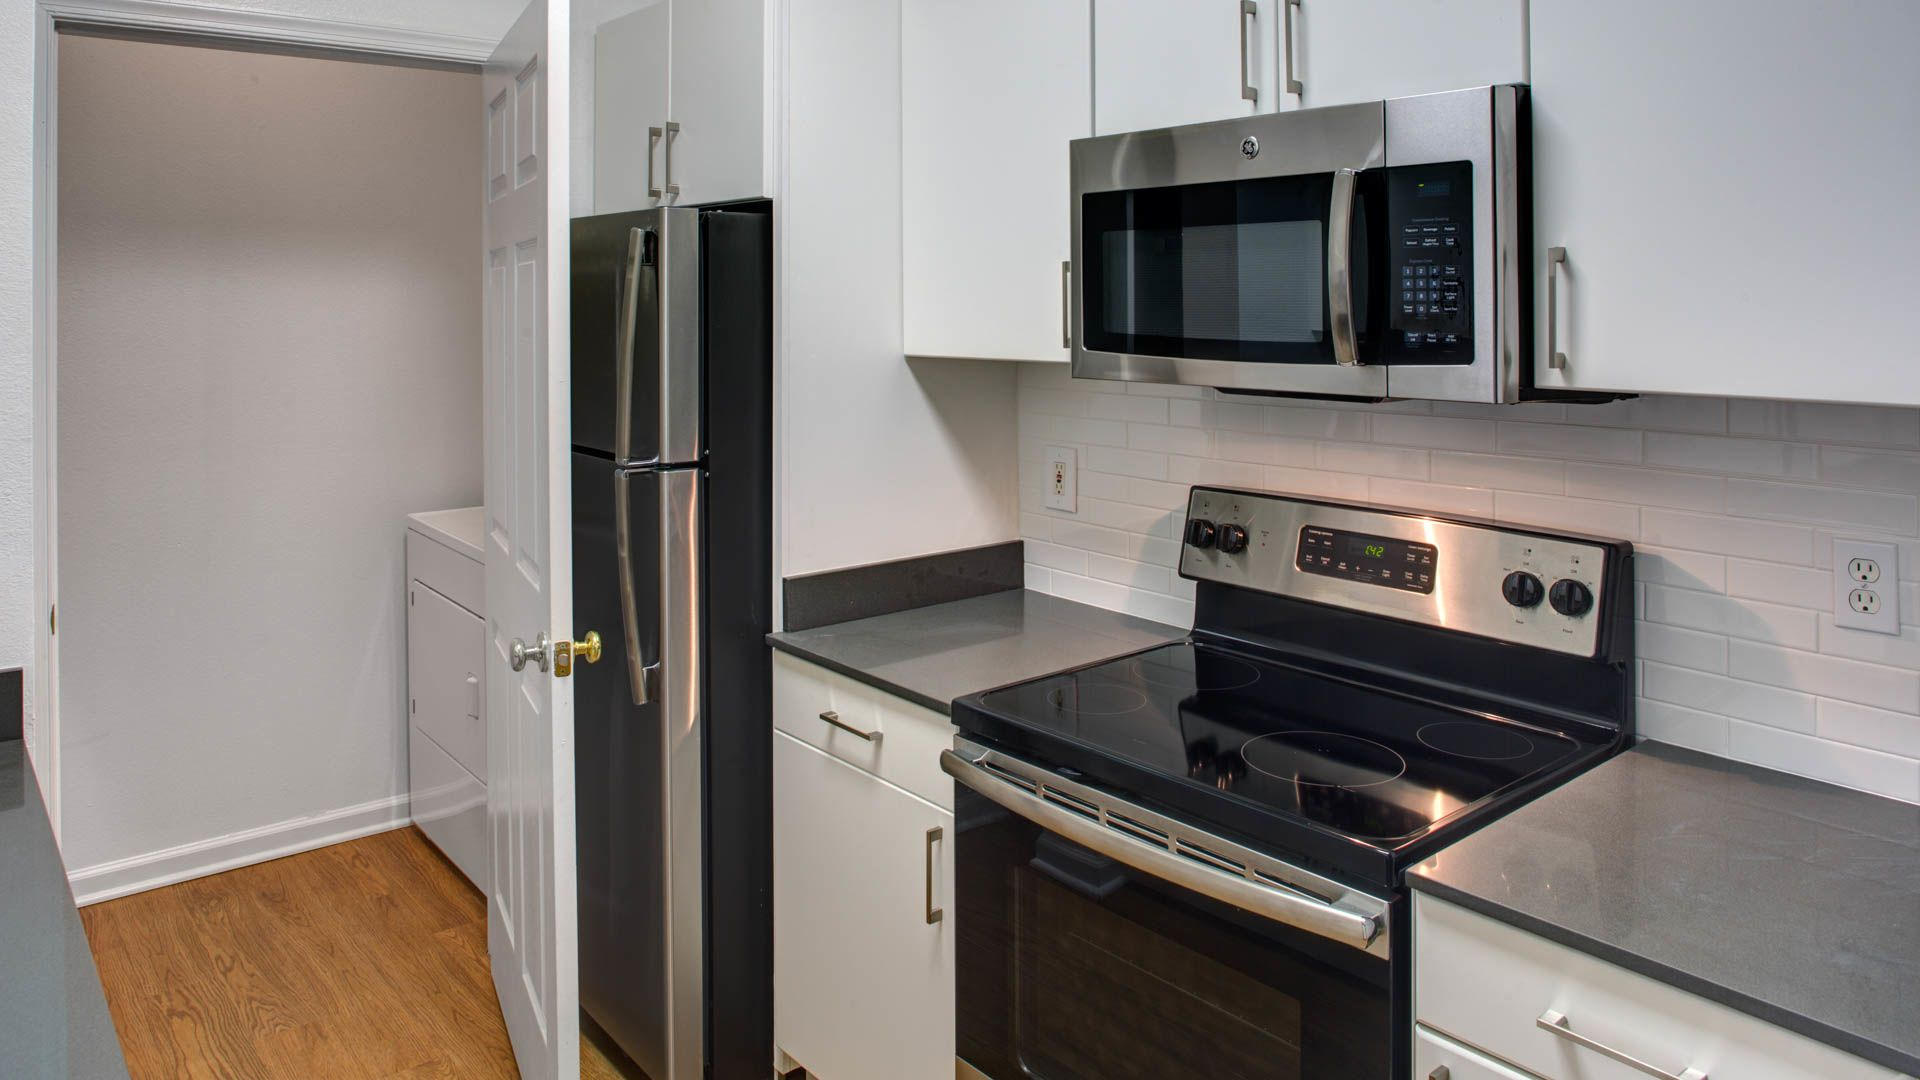 High Quality Reserve At Potomac Yard Apartments In Alexandria   3700 Jefferson Davis Hwy    EquityApartments.com Pictures Gallery